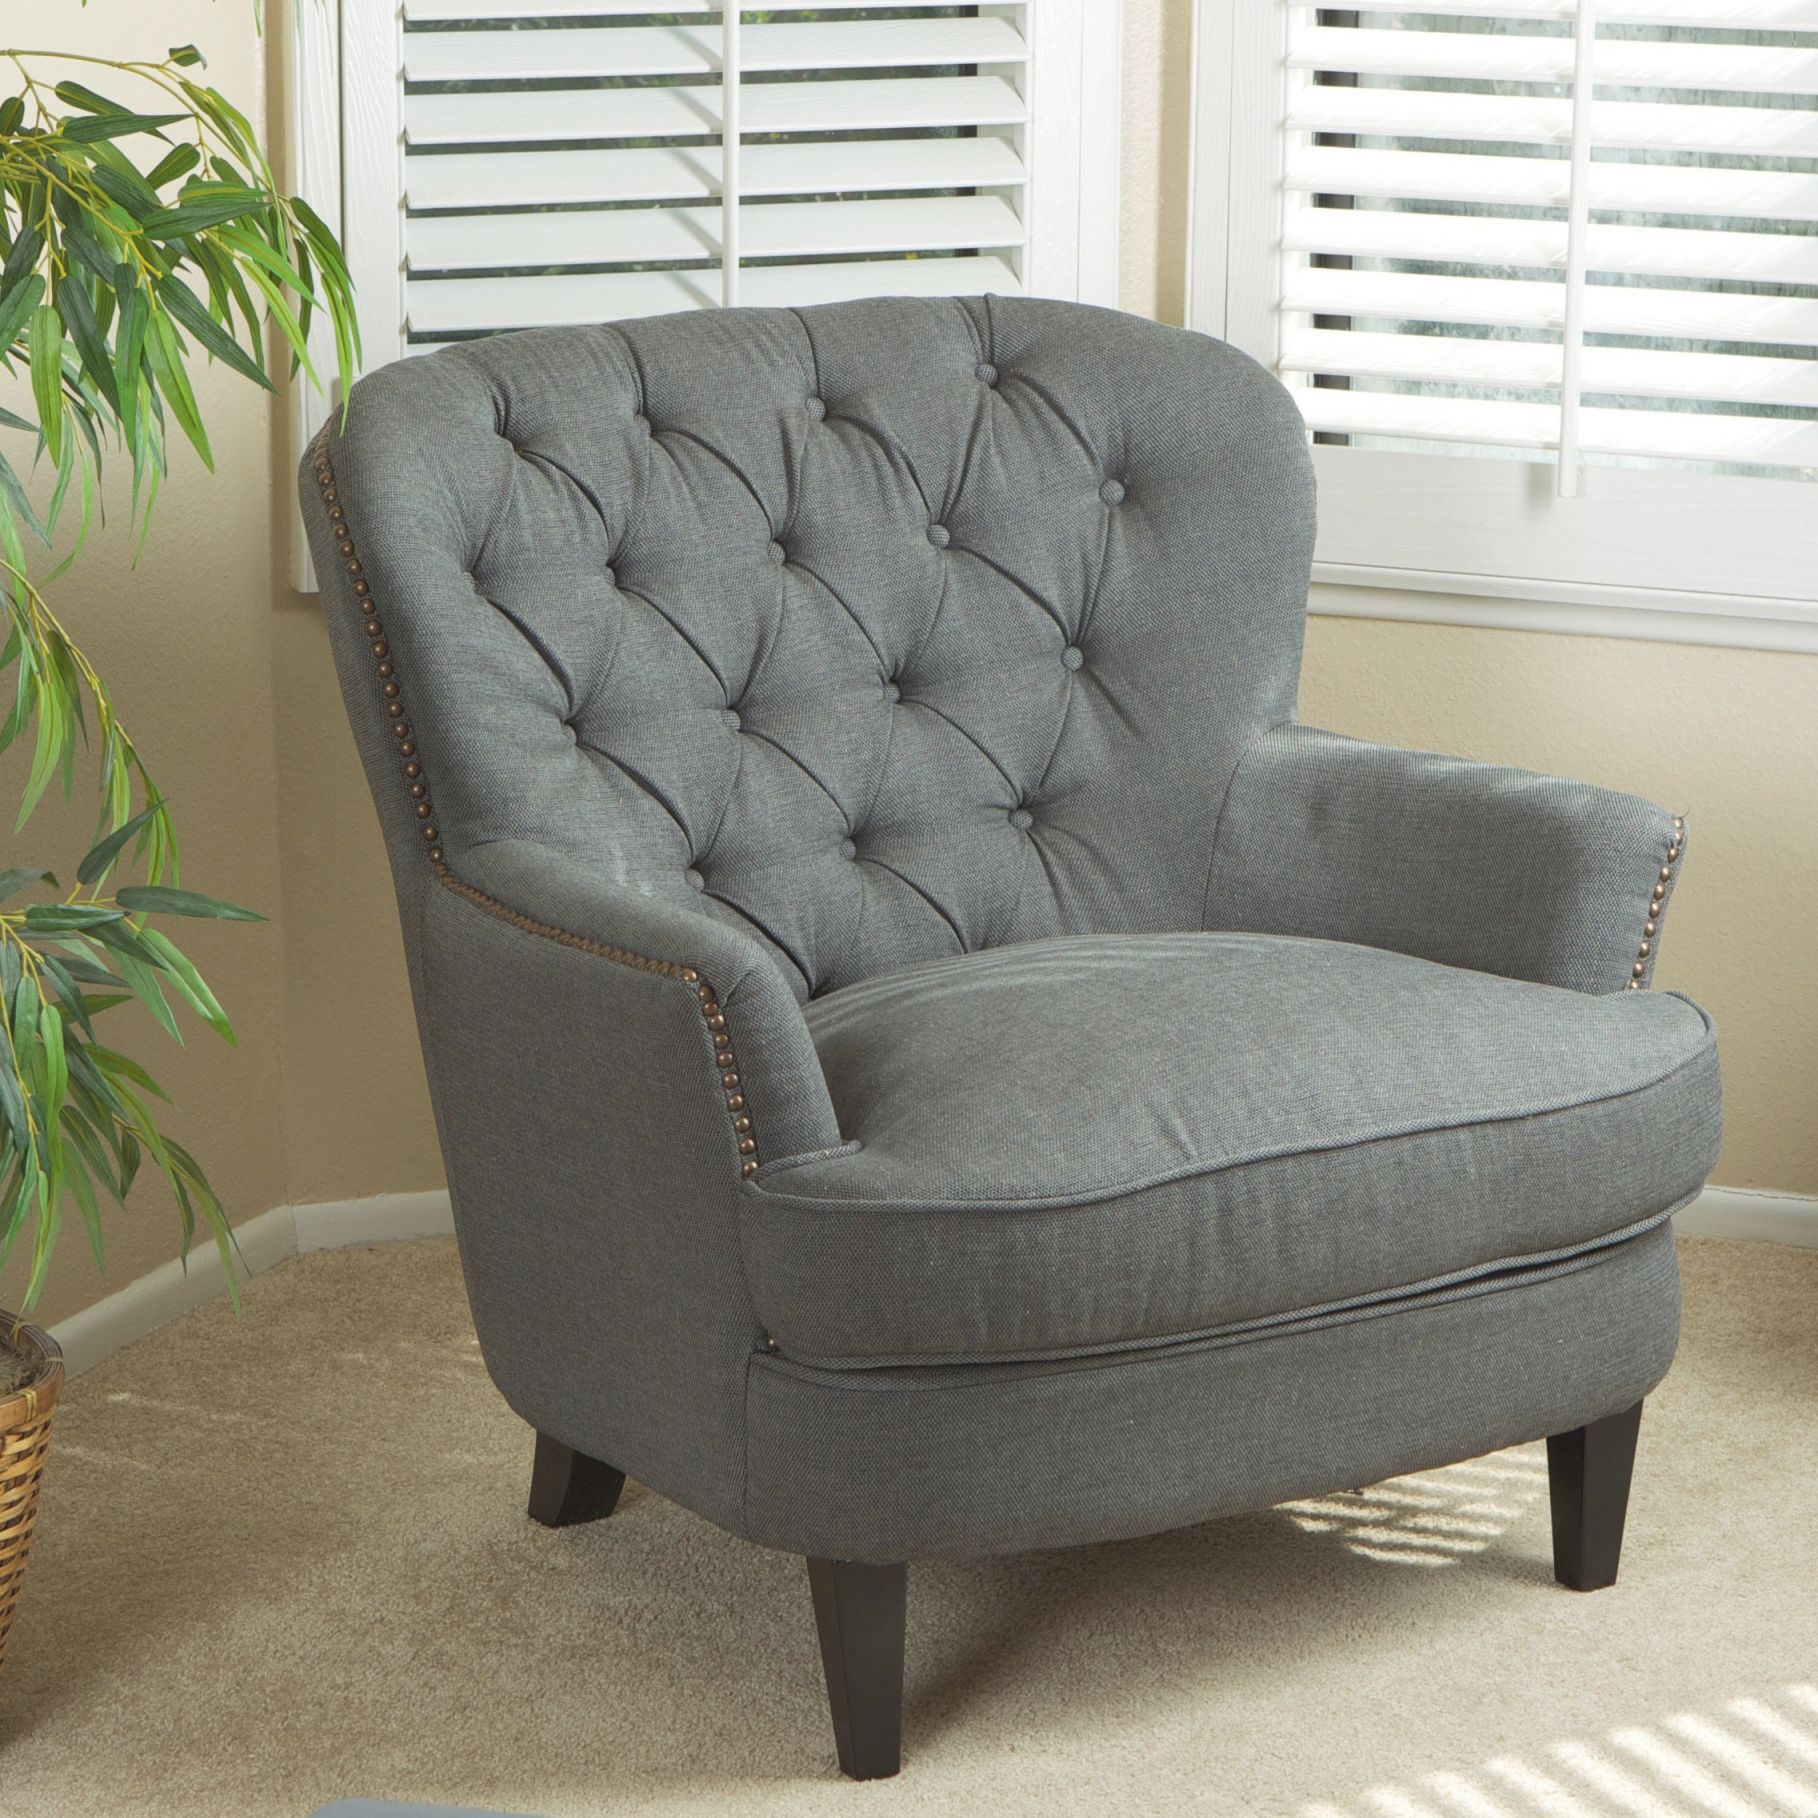 Details About Accent Chairs For Living Room Furniture Club